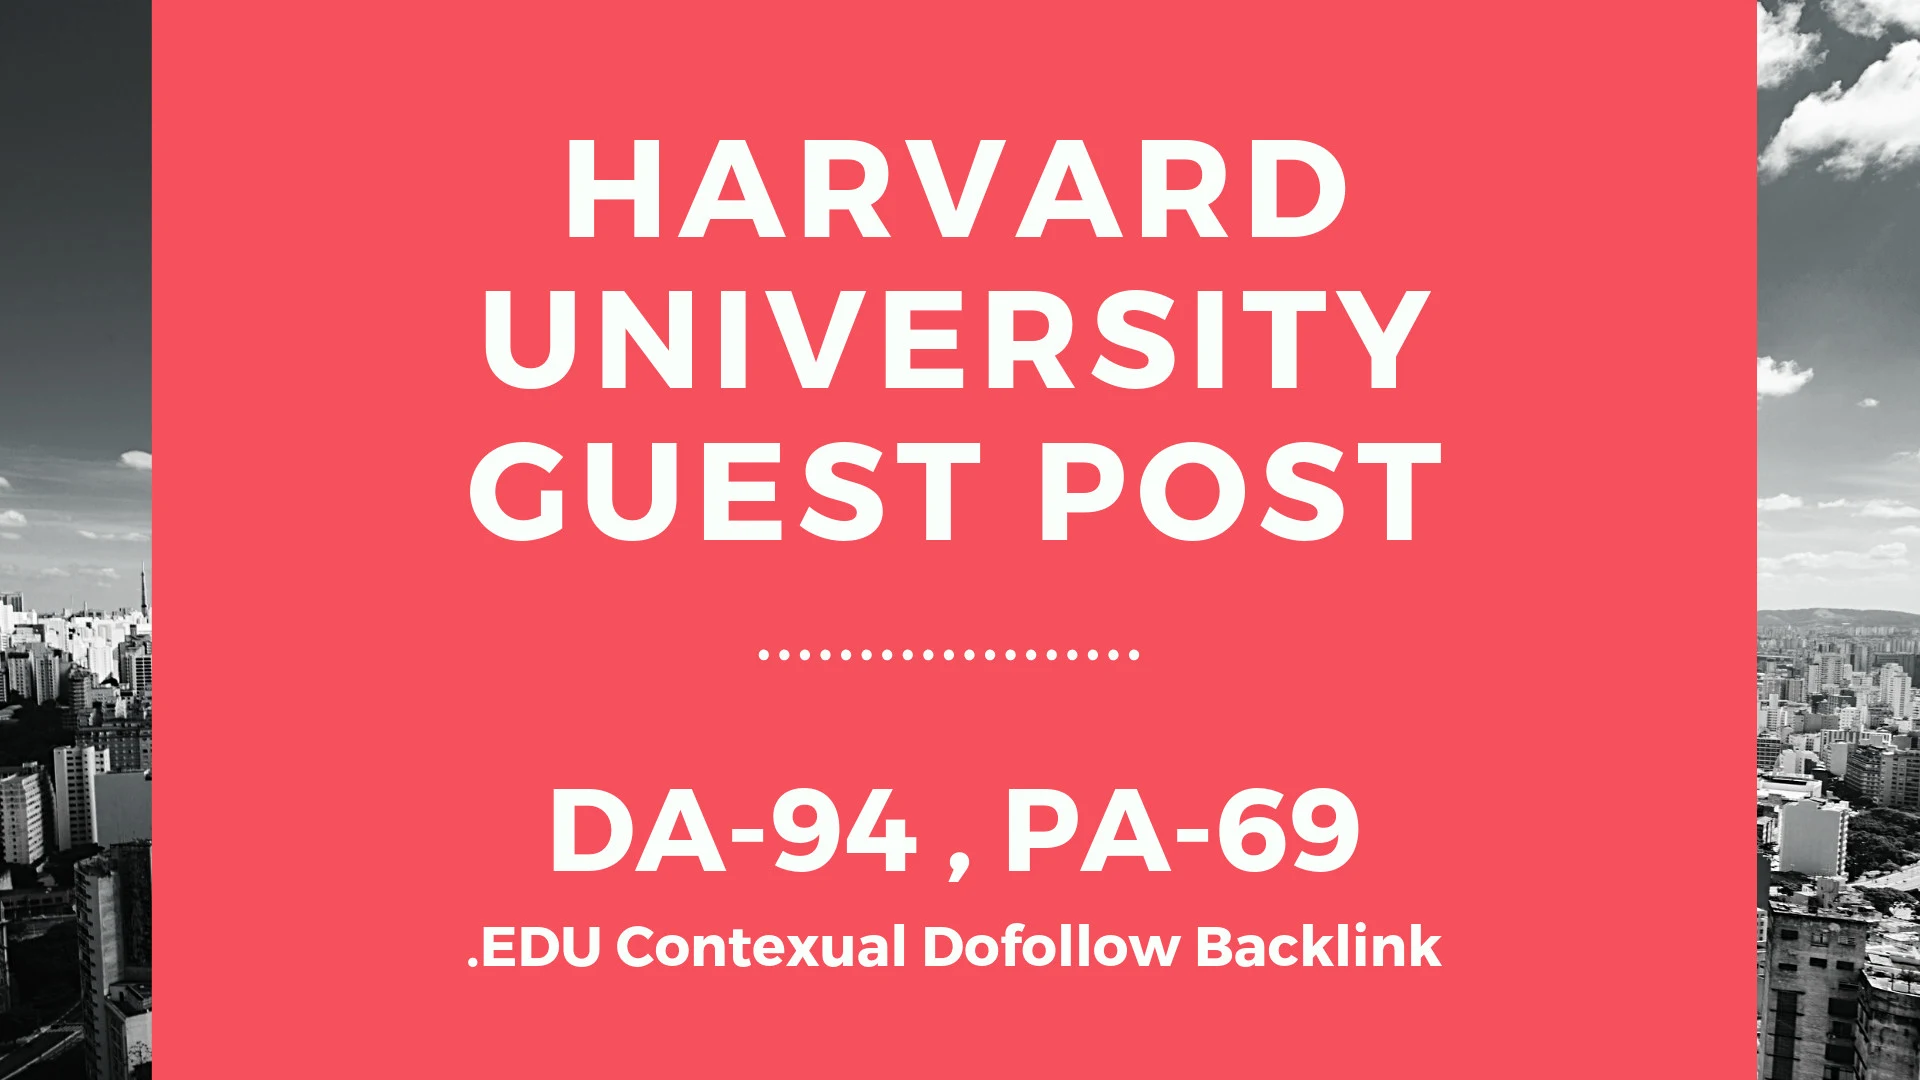 Publish a Guest Post on Harvard University harvard. edu - DA94